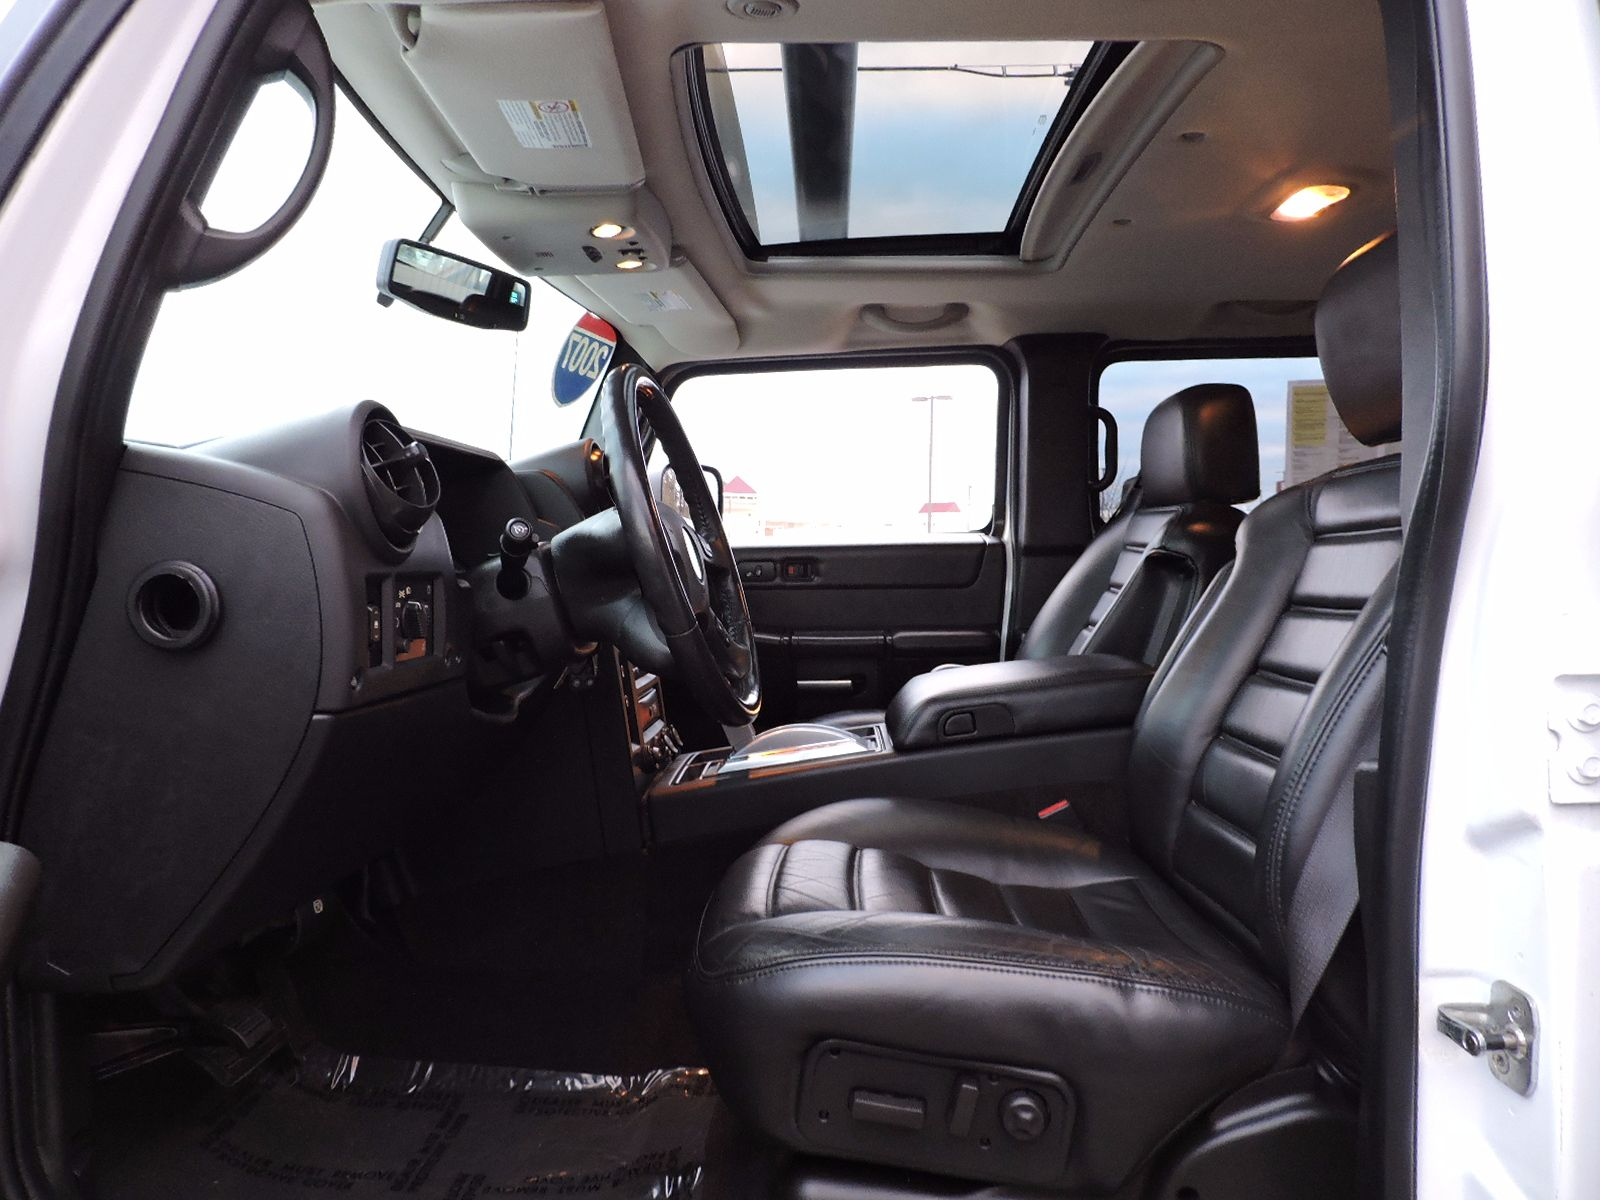 2007 HUMMER H2 SUT - All Wheel Drive - Navigation - DVD Entertainment System